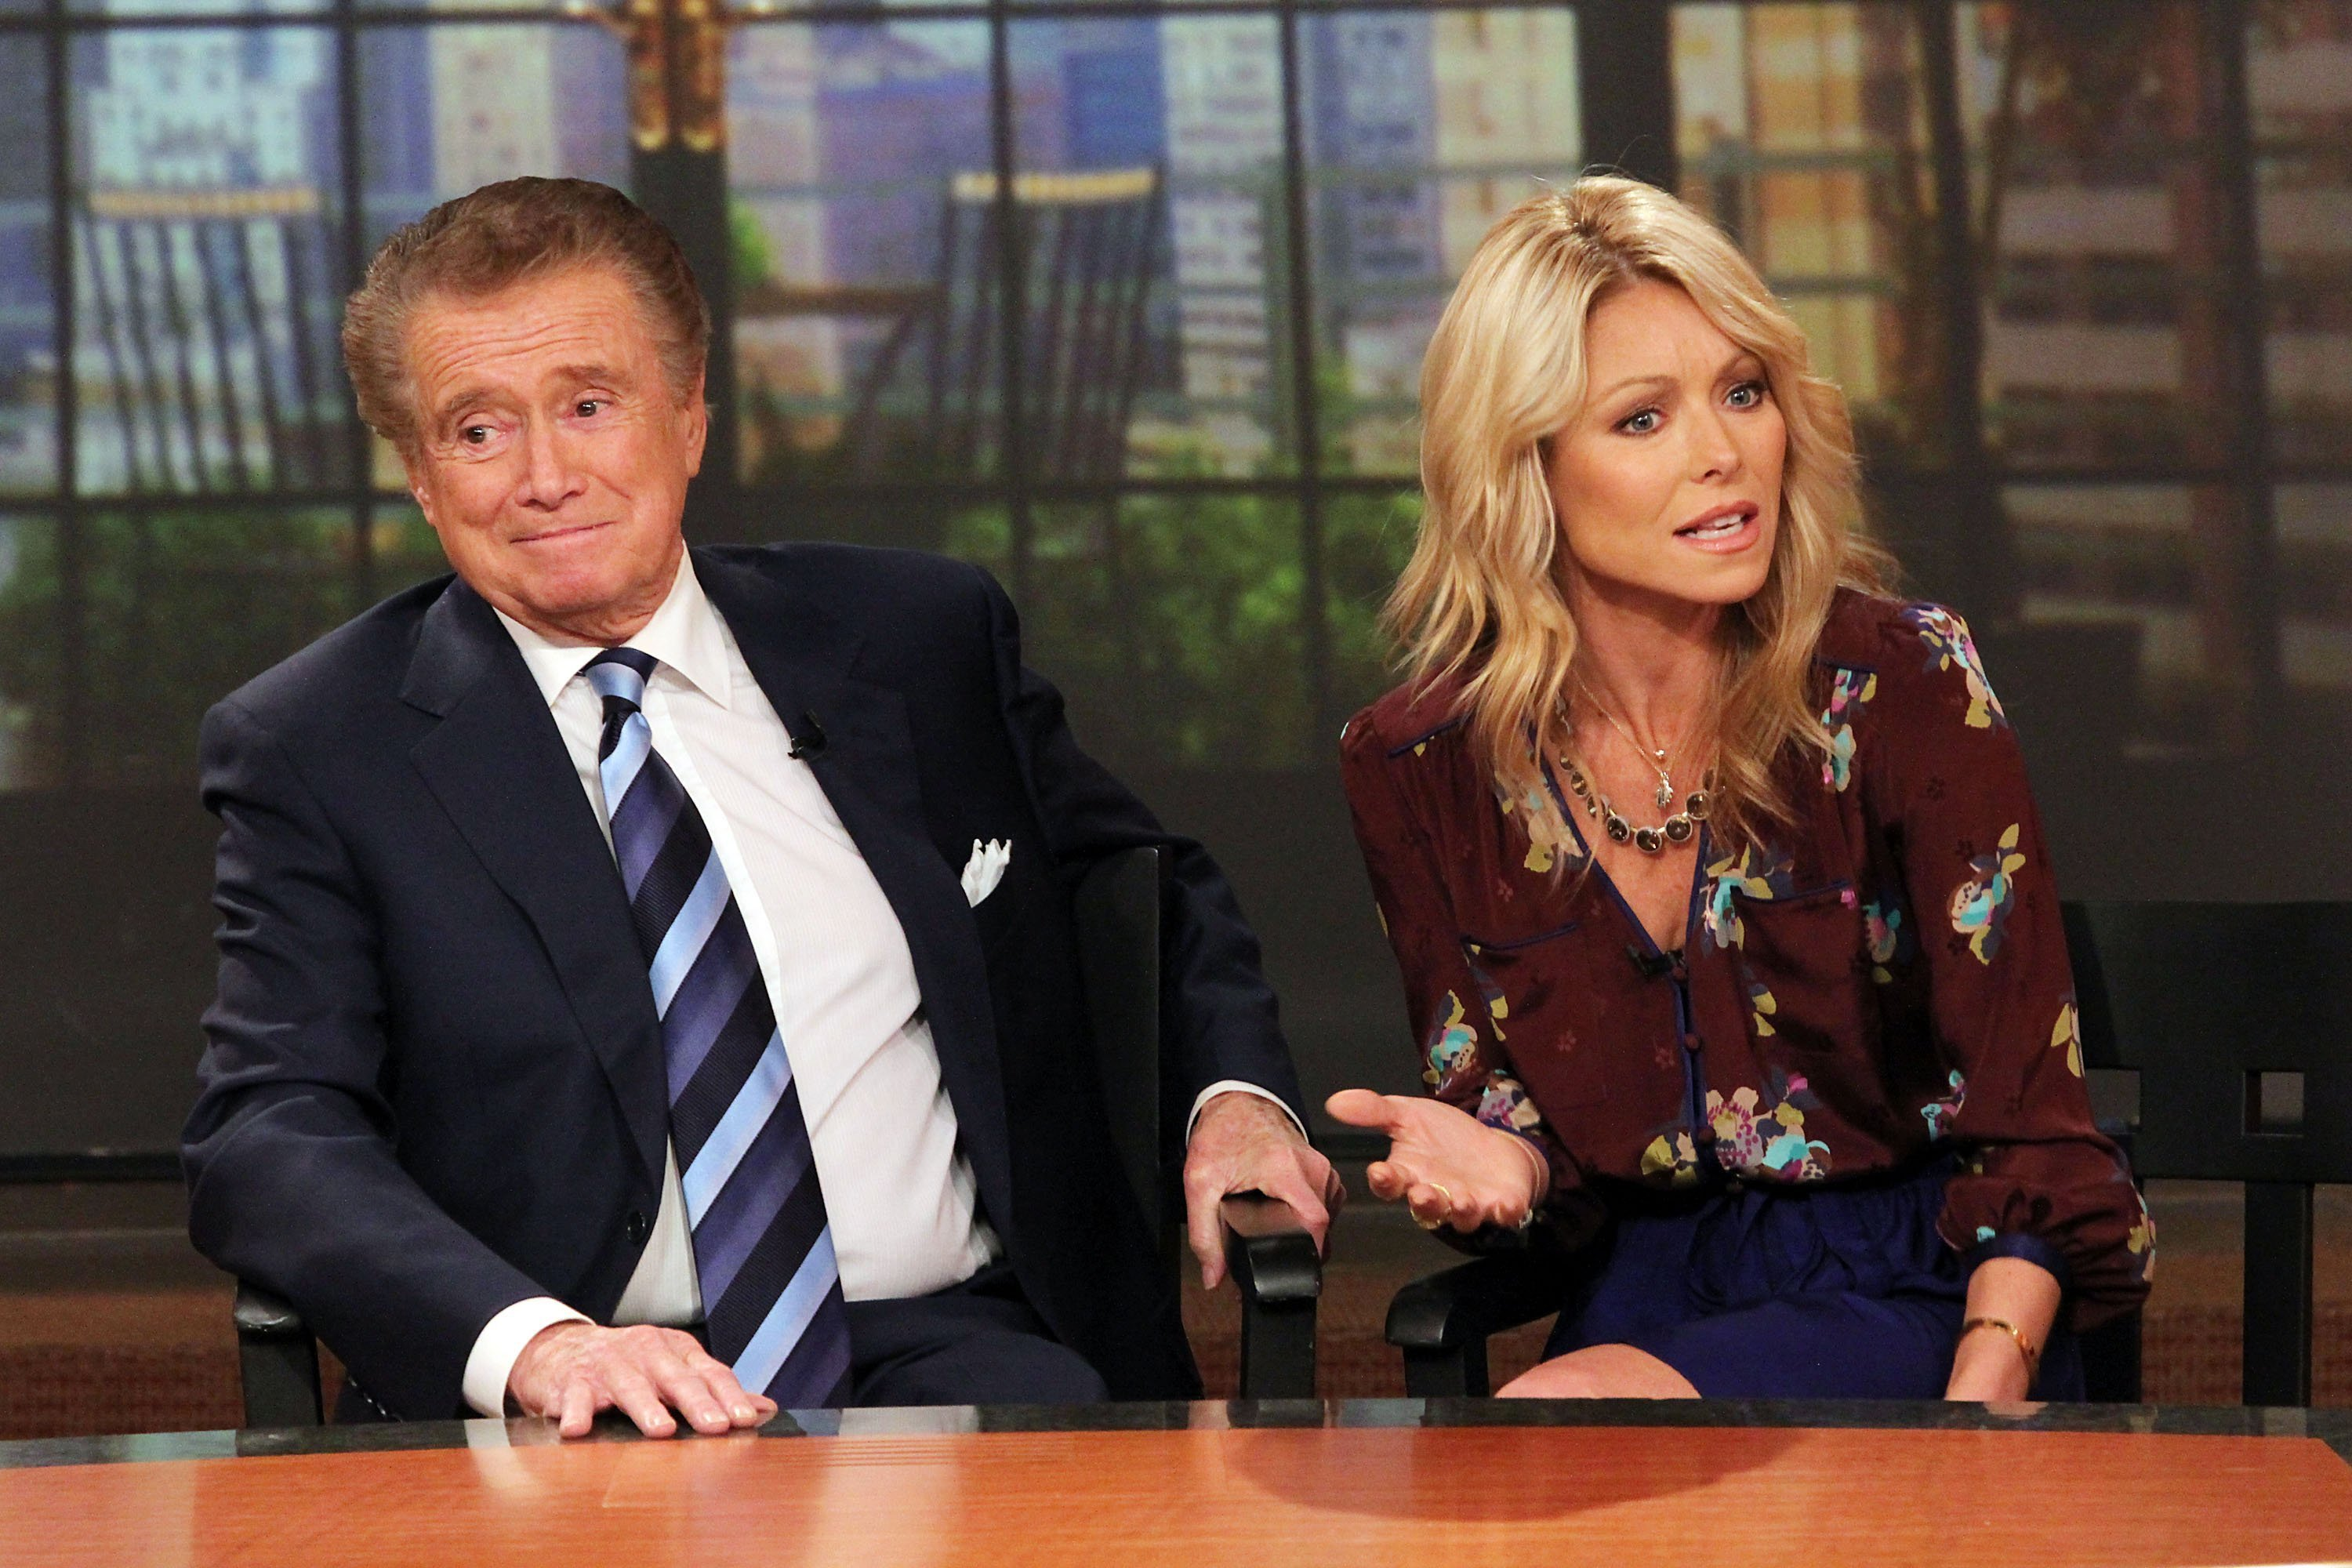 Regis Philbin and Kelly Ripa on November 17, 2011 in New York City | Source: Getty Images/Global Images Ukraine